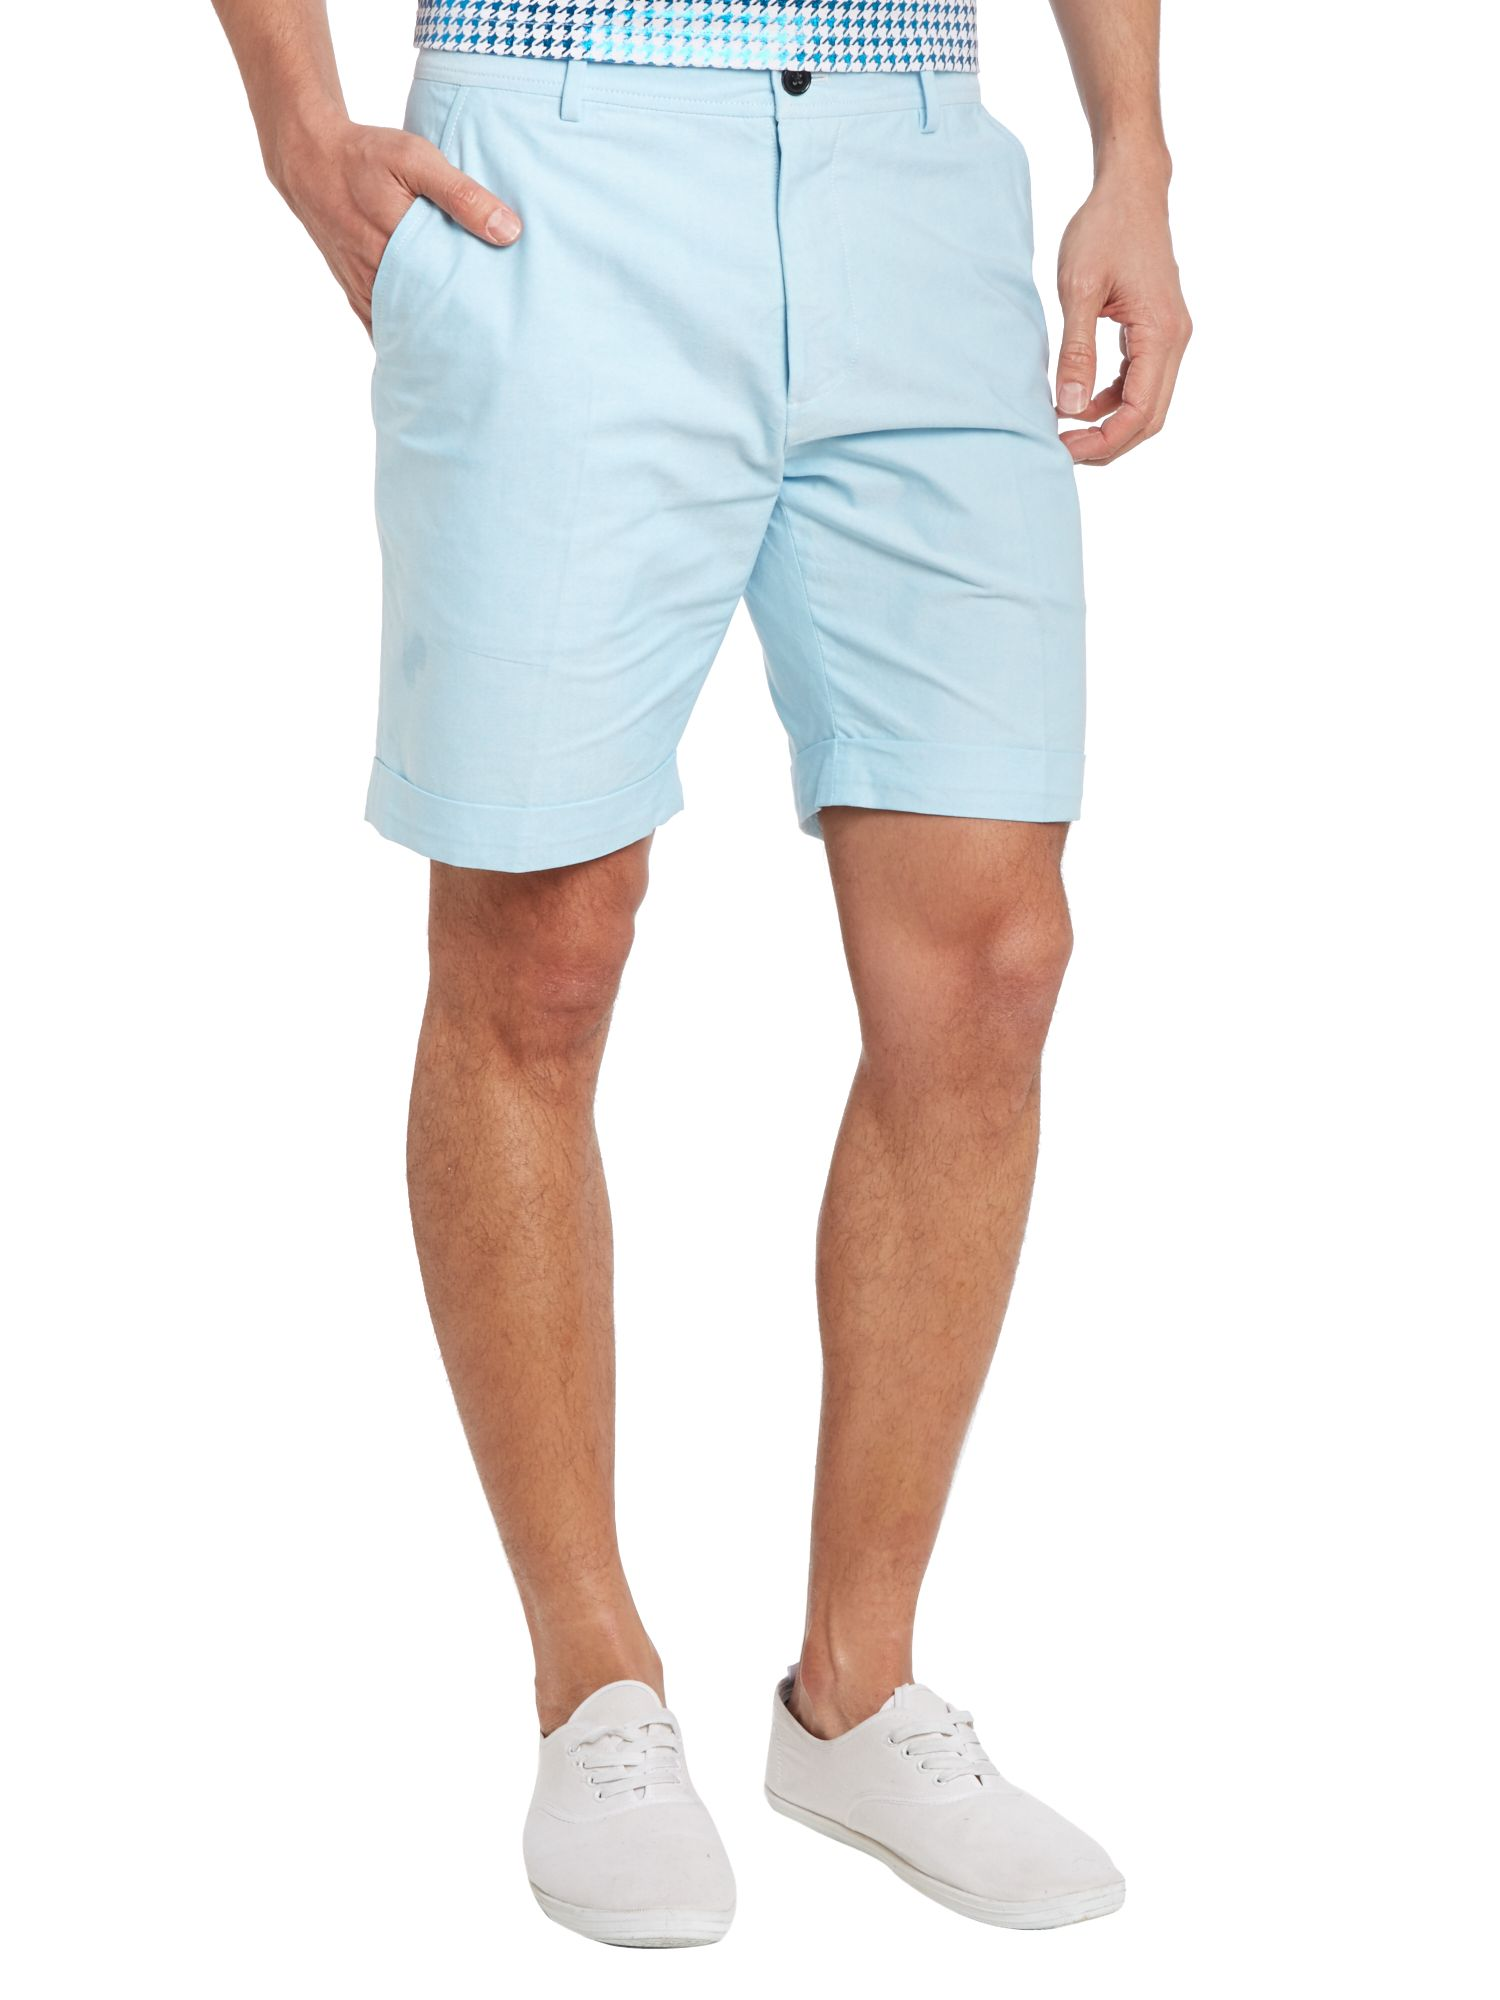 Four pocket chino short